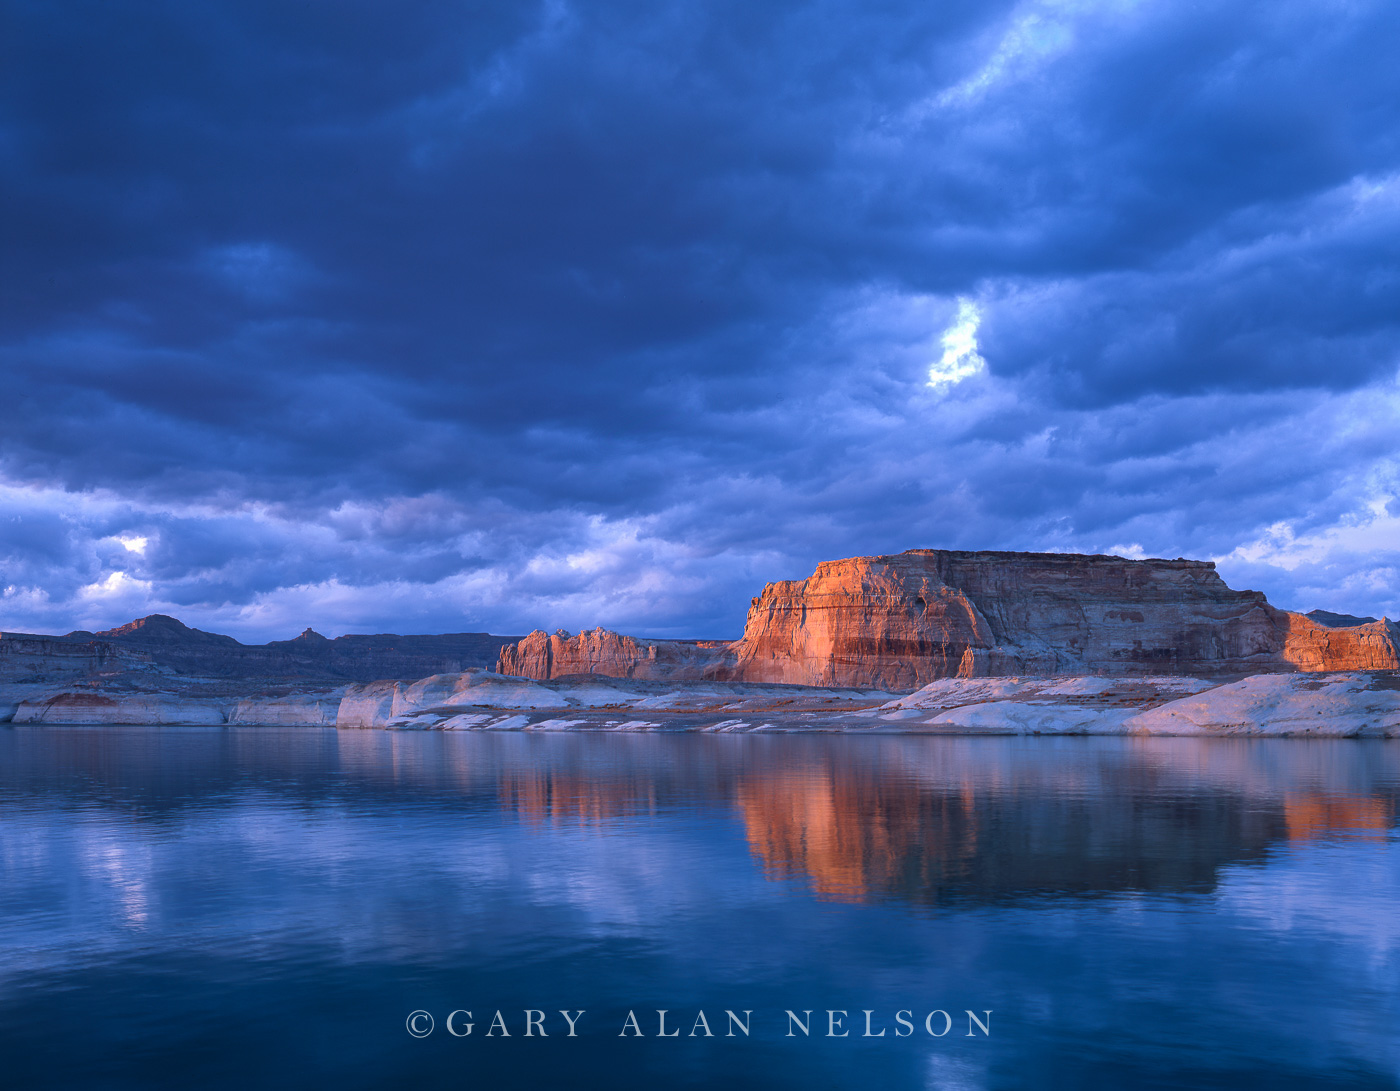 Glen Canyon National Recreation Area, Utah, lake powell, wahweap bay, wireglass canyon, photo